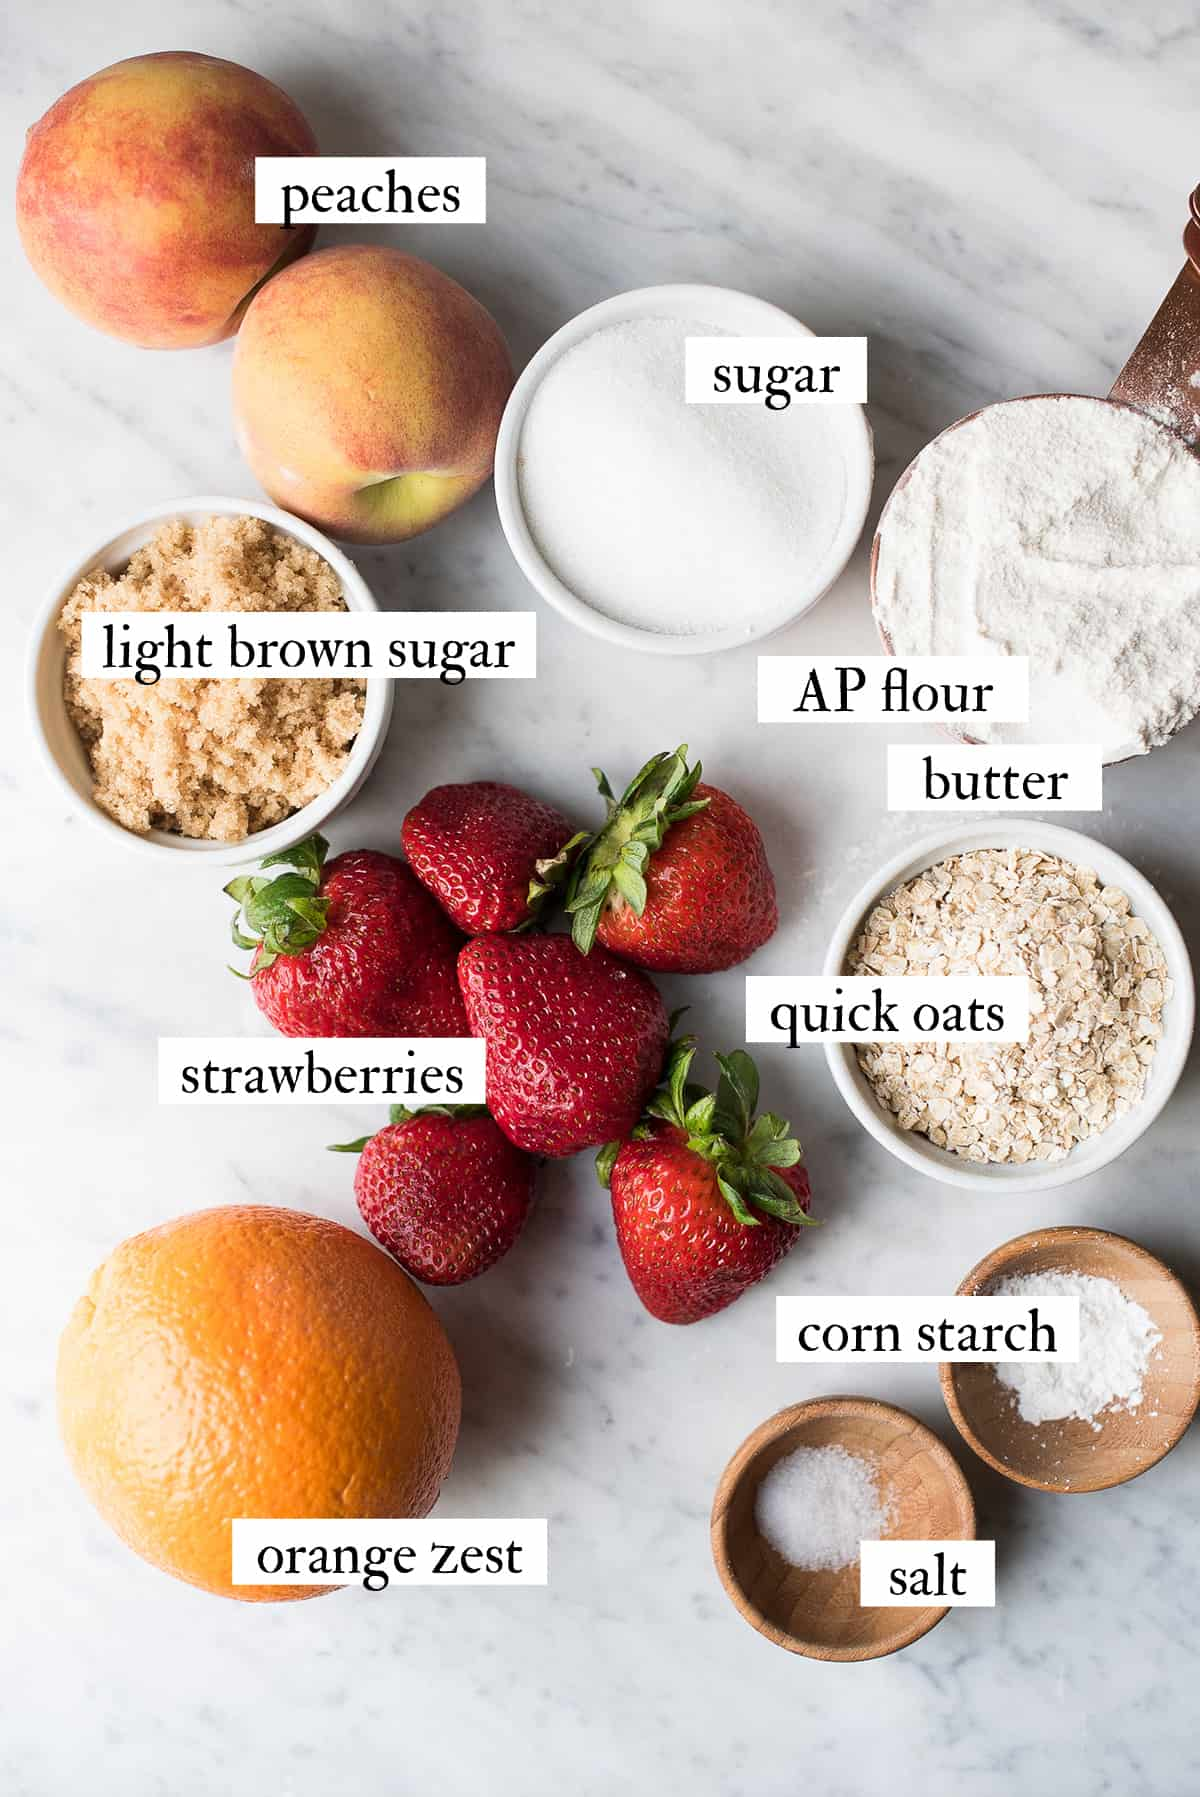 ingredients for strawberry peach crumble on white marble surface